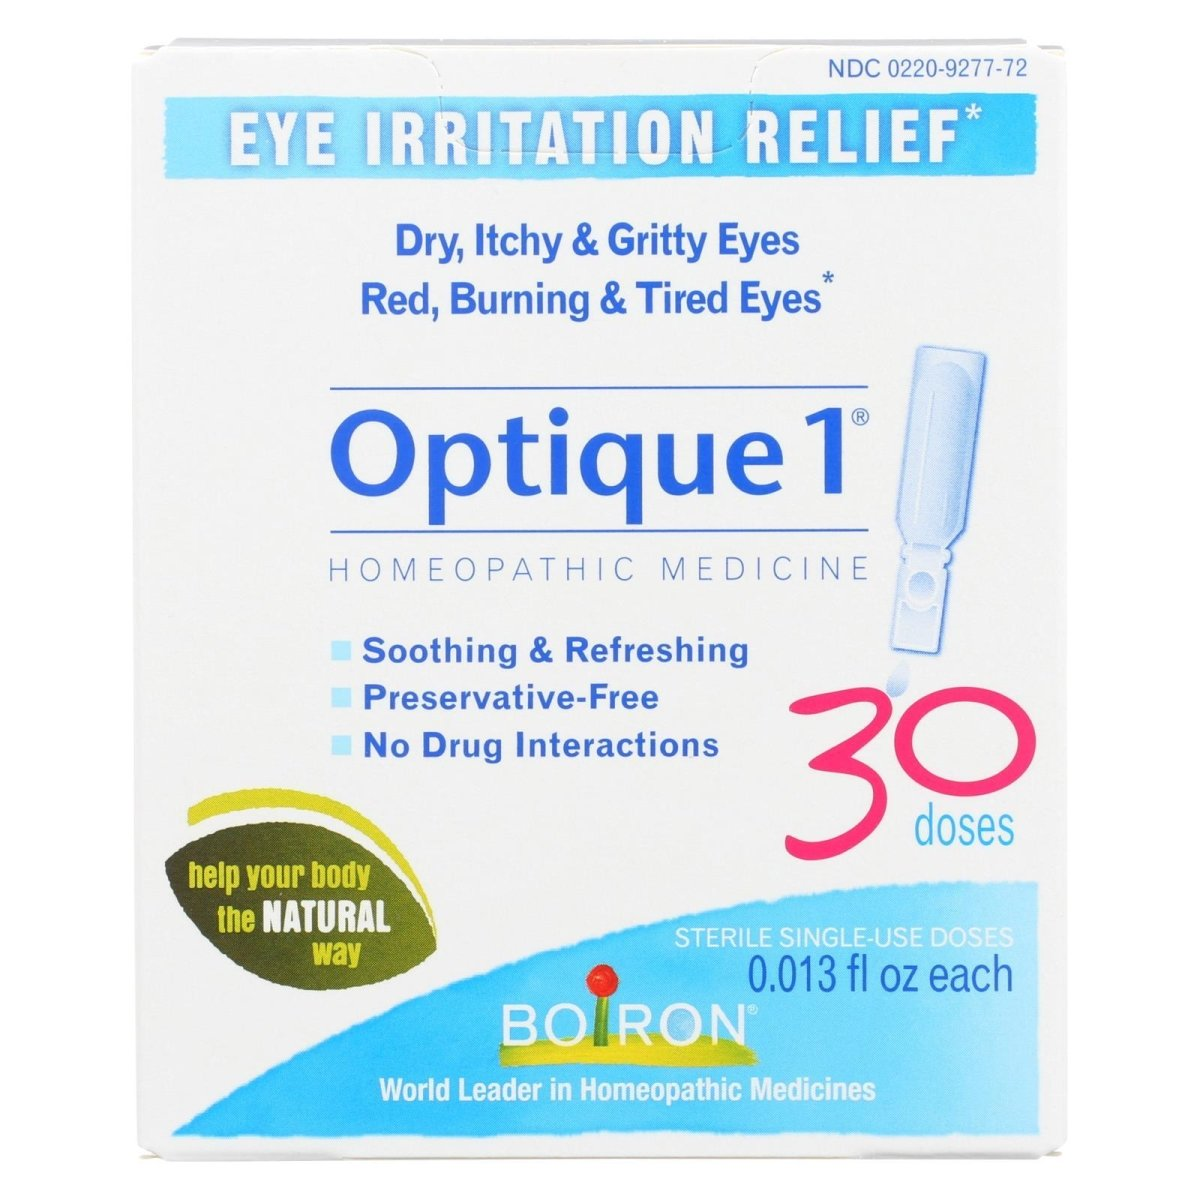 Boiron optique 1 Eye Irritation Relief Eye Drops, 30 doses